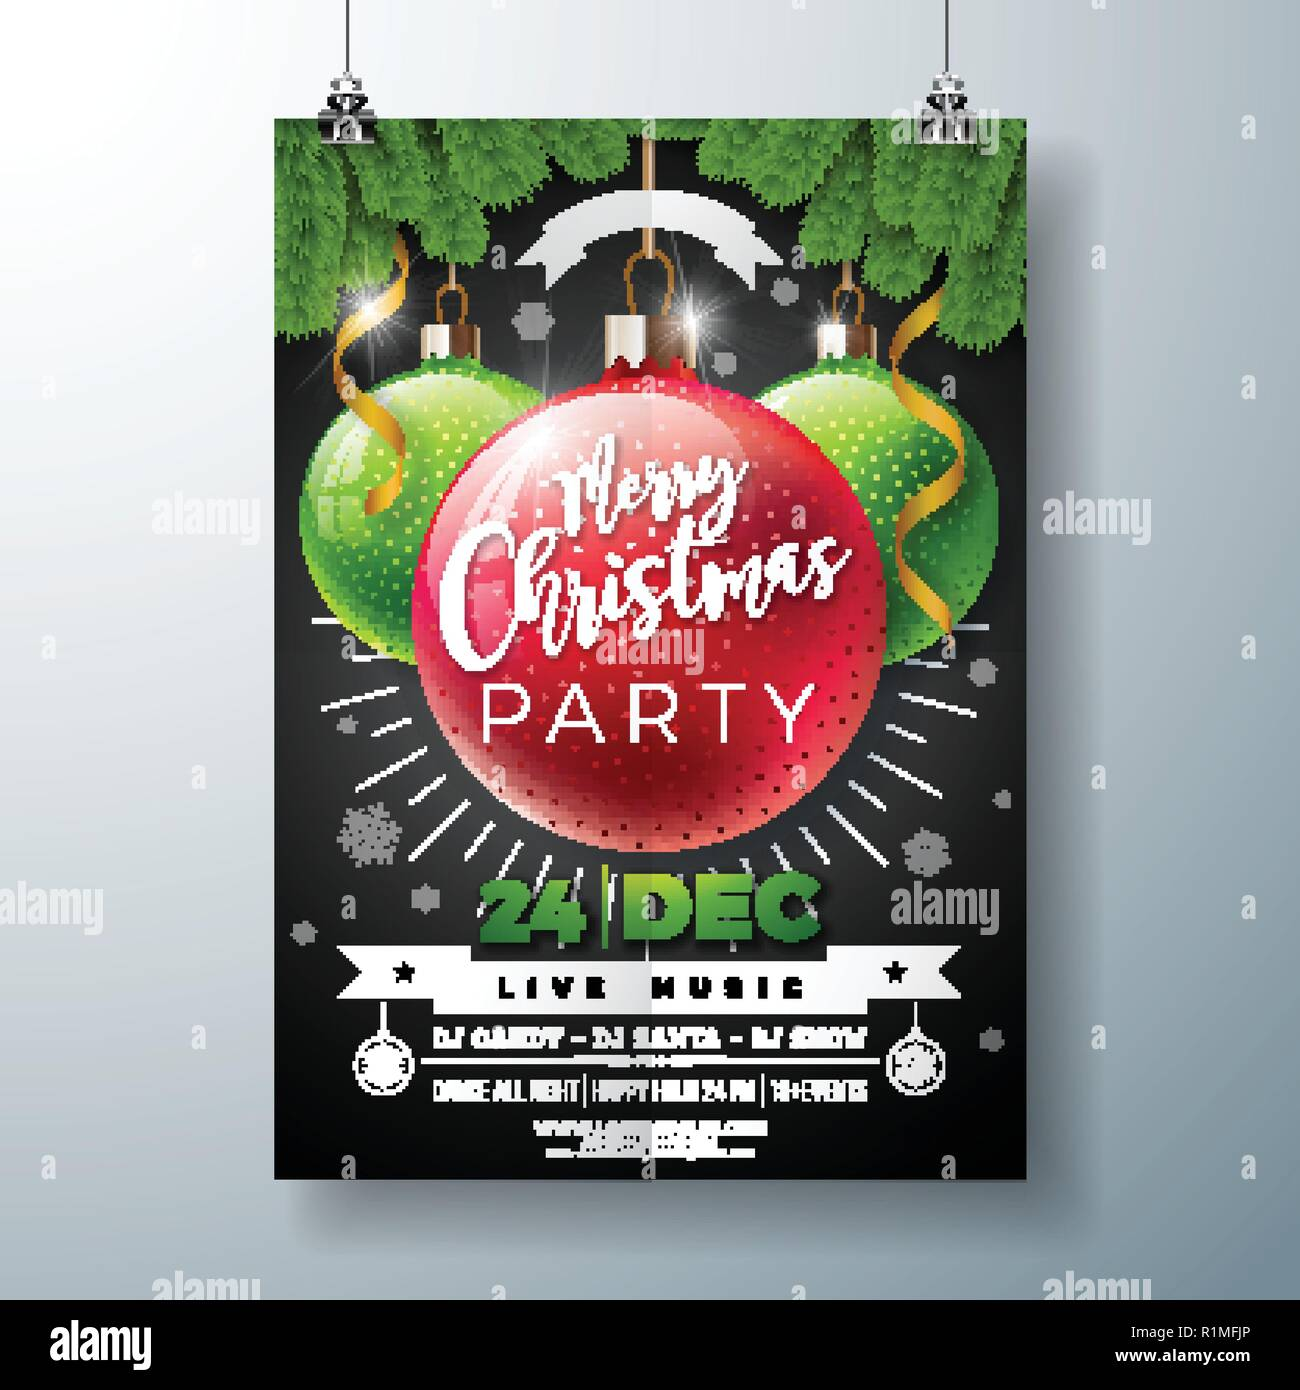 Christmas Party Flyer.Christmas Party Flyer Illustration With Shiny Glass Ball And